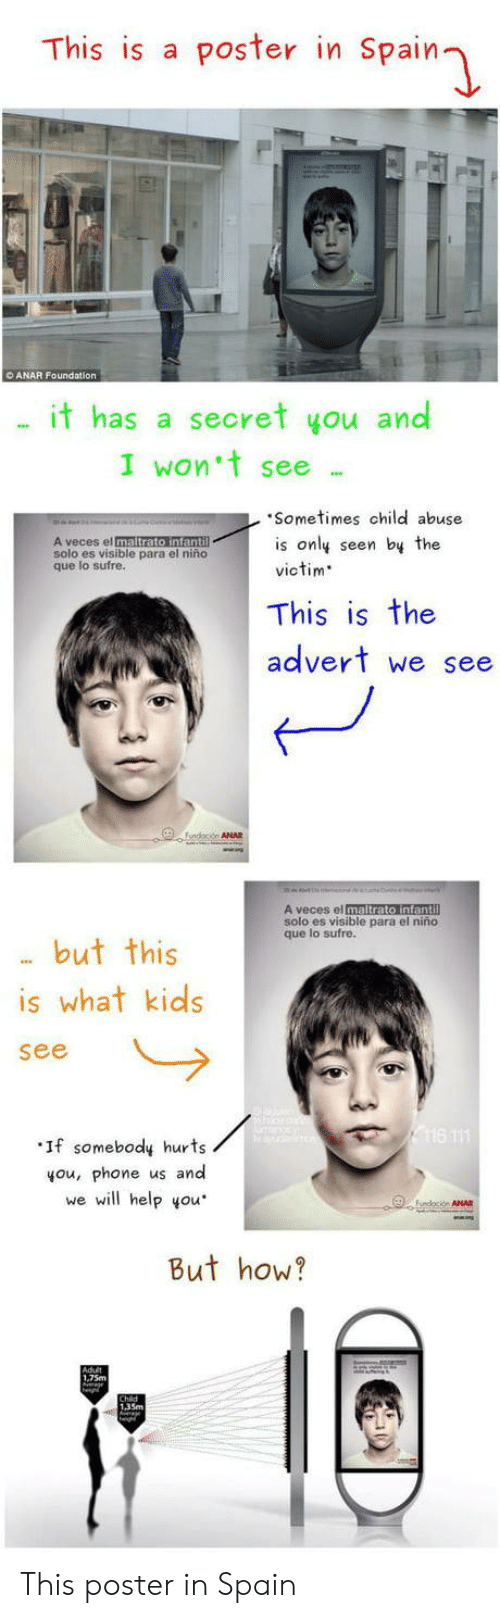 El Nino: This is a poster in Spain  O ANAR Foundation  . it has a secret you and  I won't see .  Sometimes child abuse  is only seen by the  victim  solo es visible para el niño  que lo sufre  This is the  advert we see  A veces el maltrato infantil  solo es visible para el niño  que lo sufre.  but this  is what kids  If somebody hurts  you, phone us and  we will help you  But how?  1,75m  135m This poster in Spain